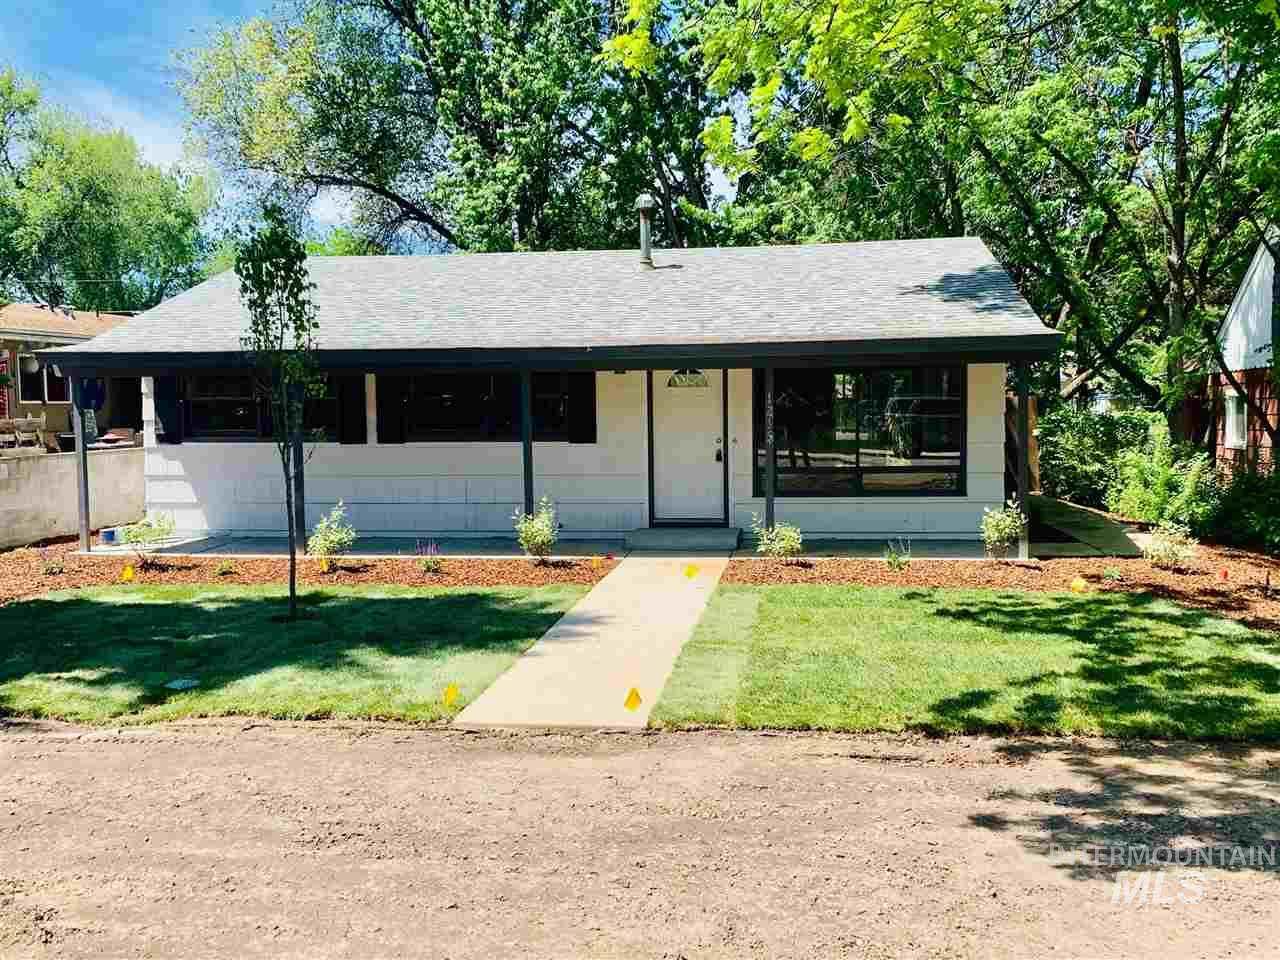 1215 S. Grant Ave, Boise ID 83706